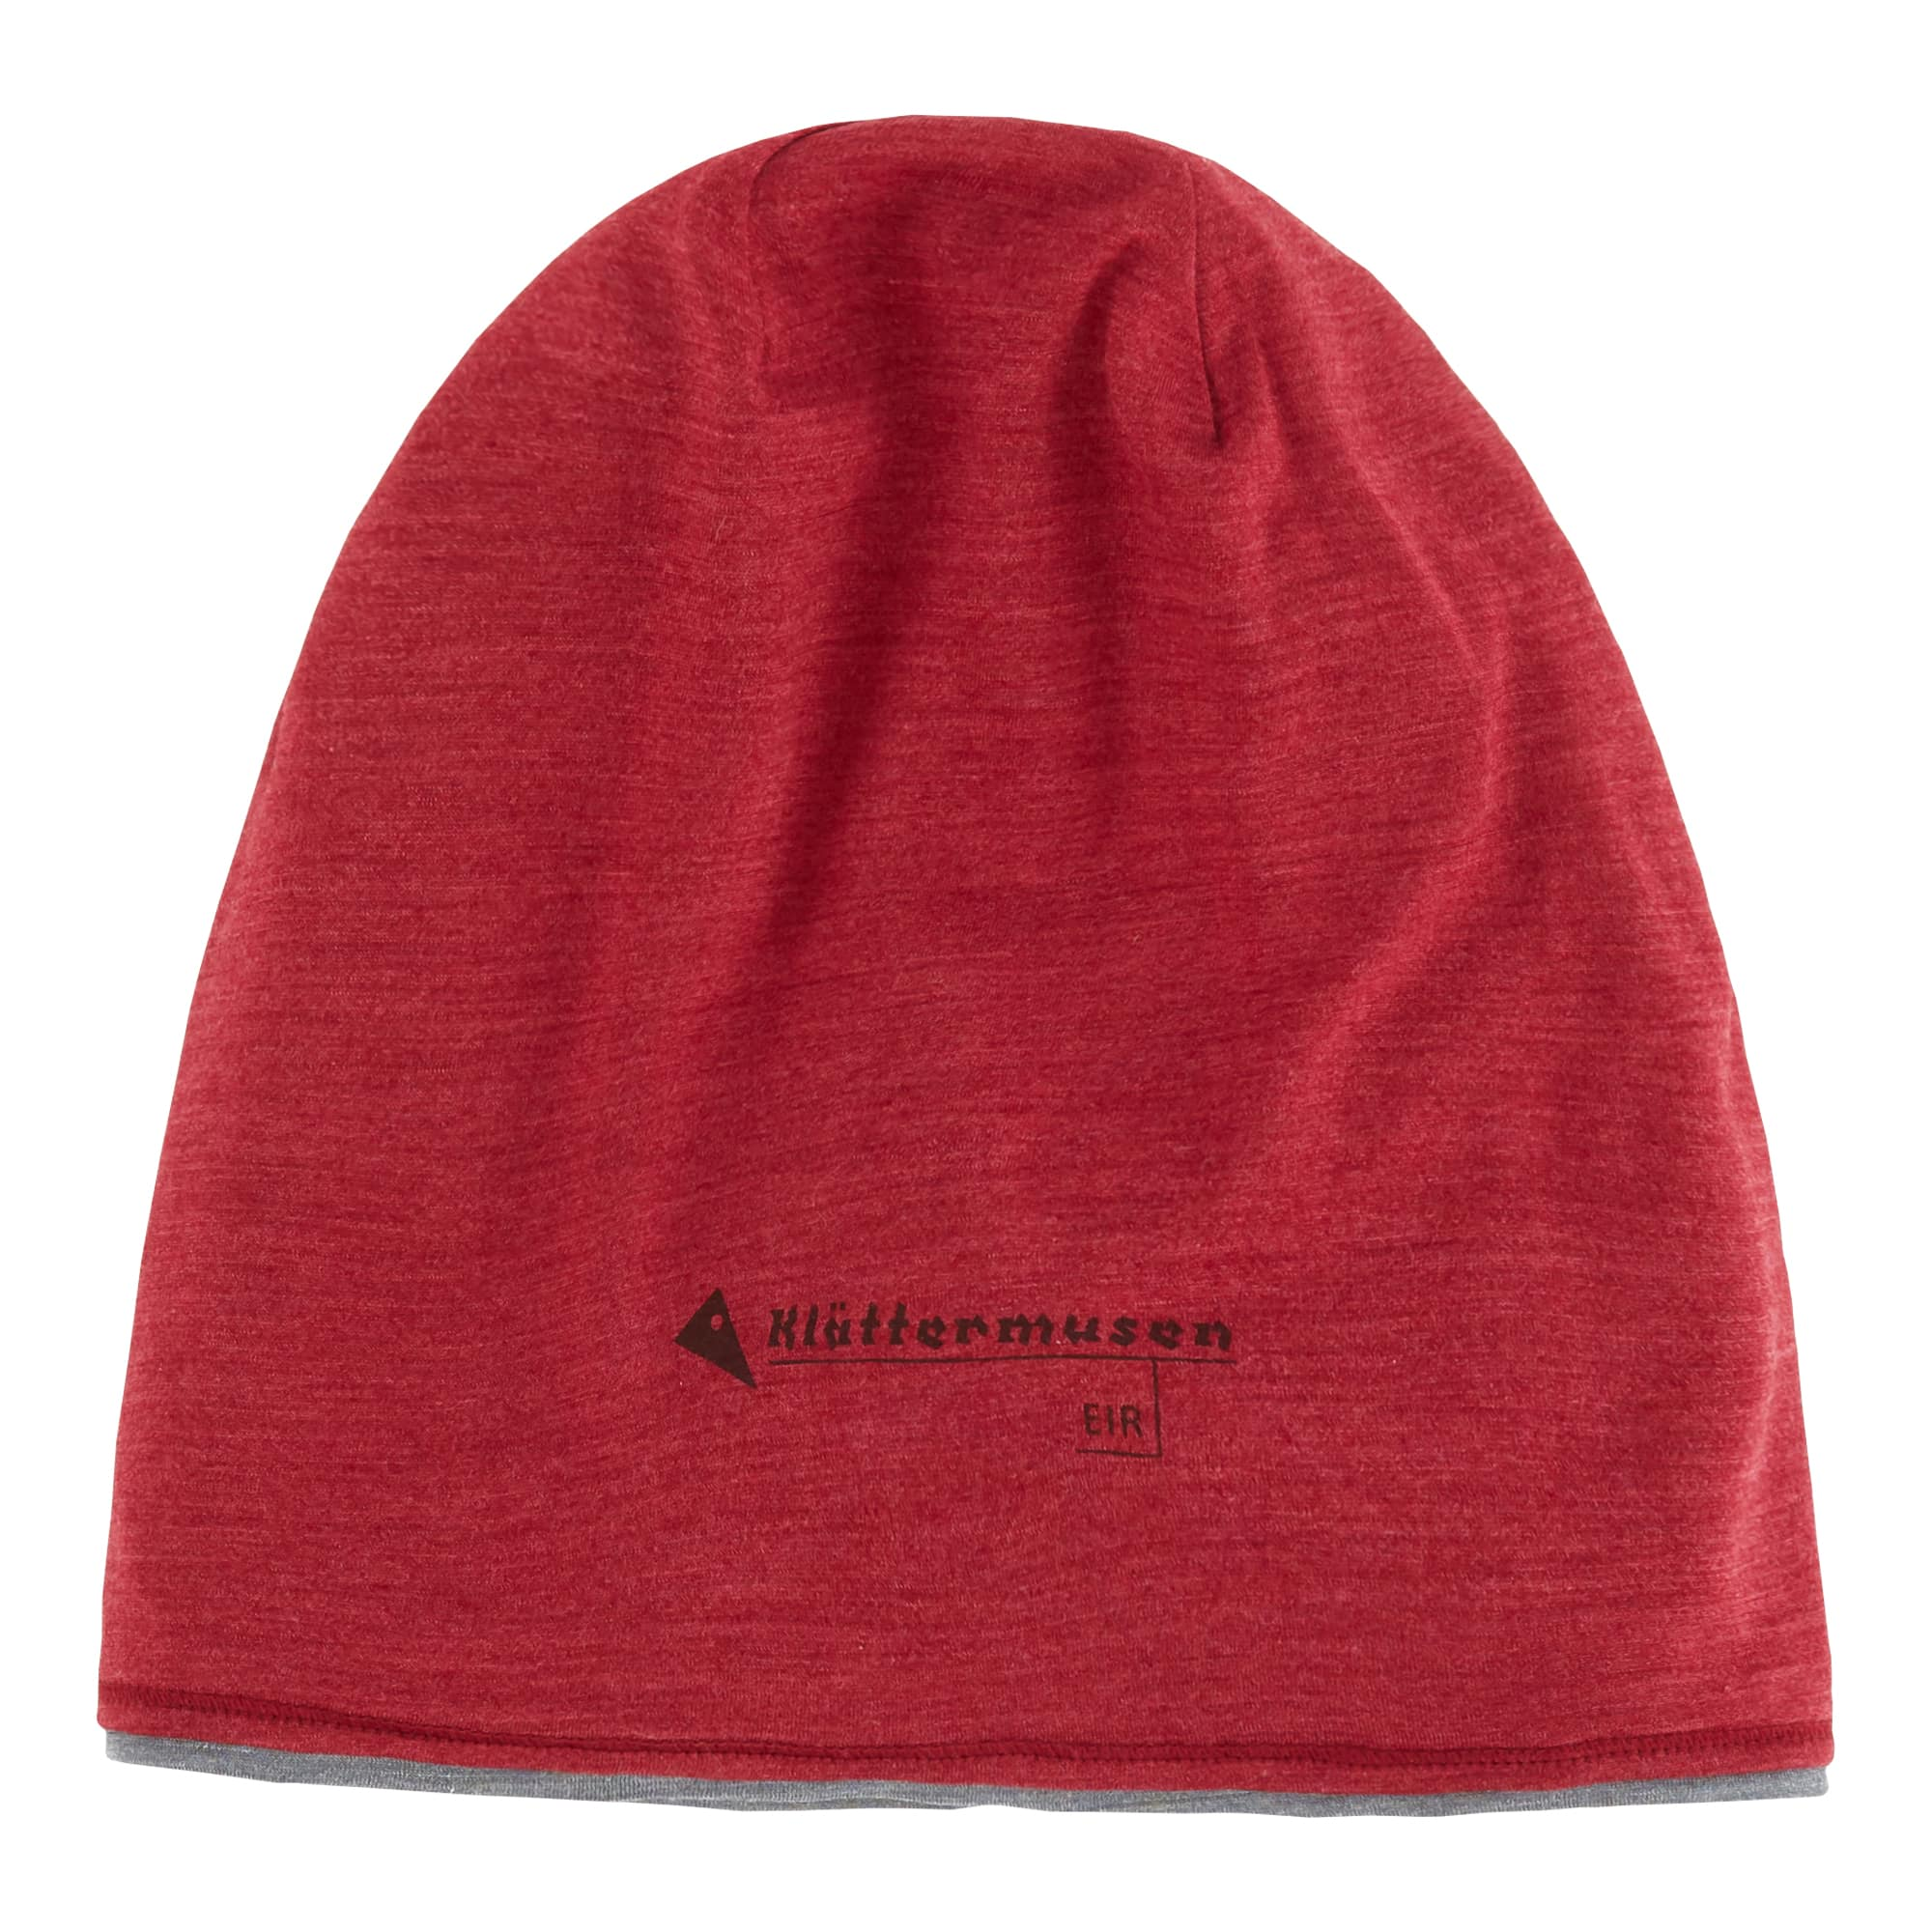 c3f99f197d8 Buy Klättermusen Eir Beanie from Outnorth